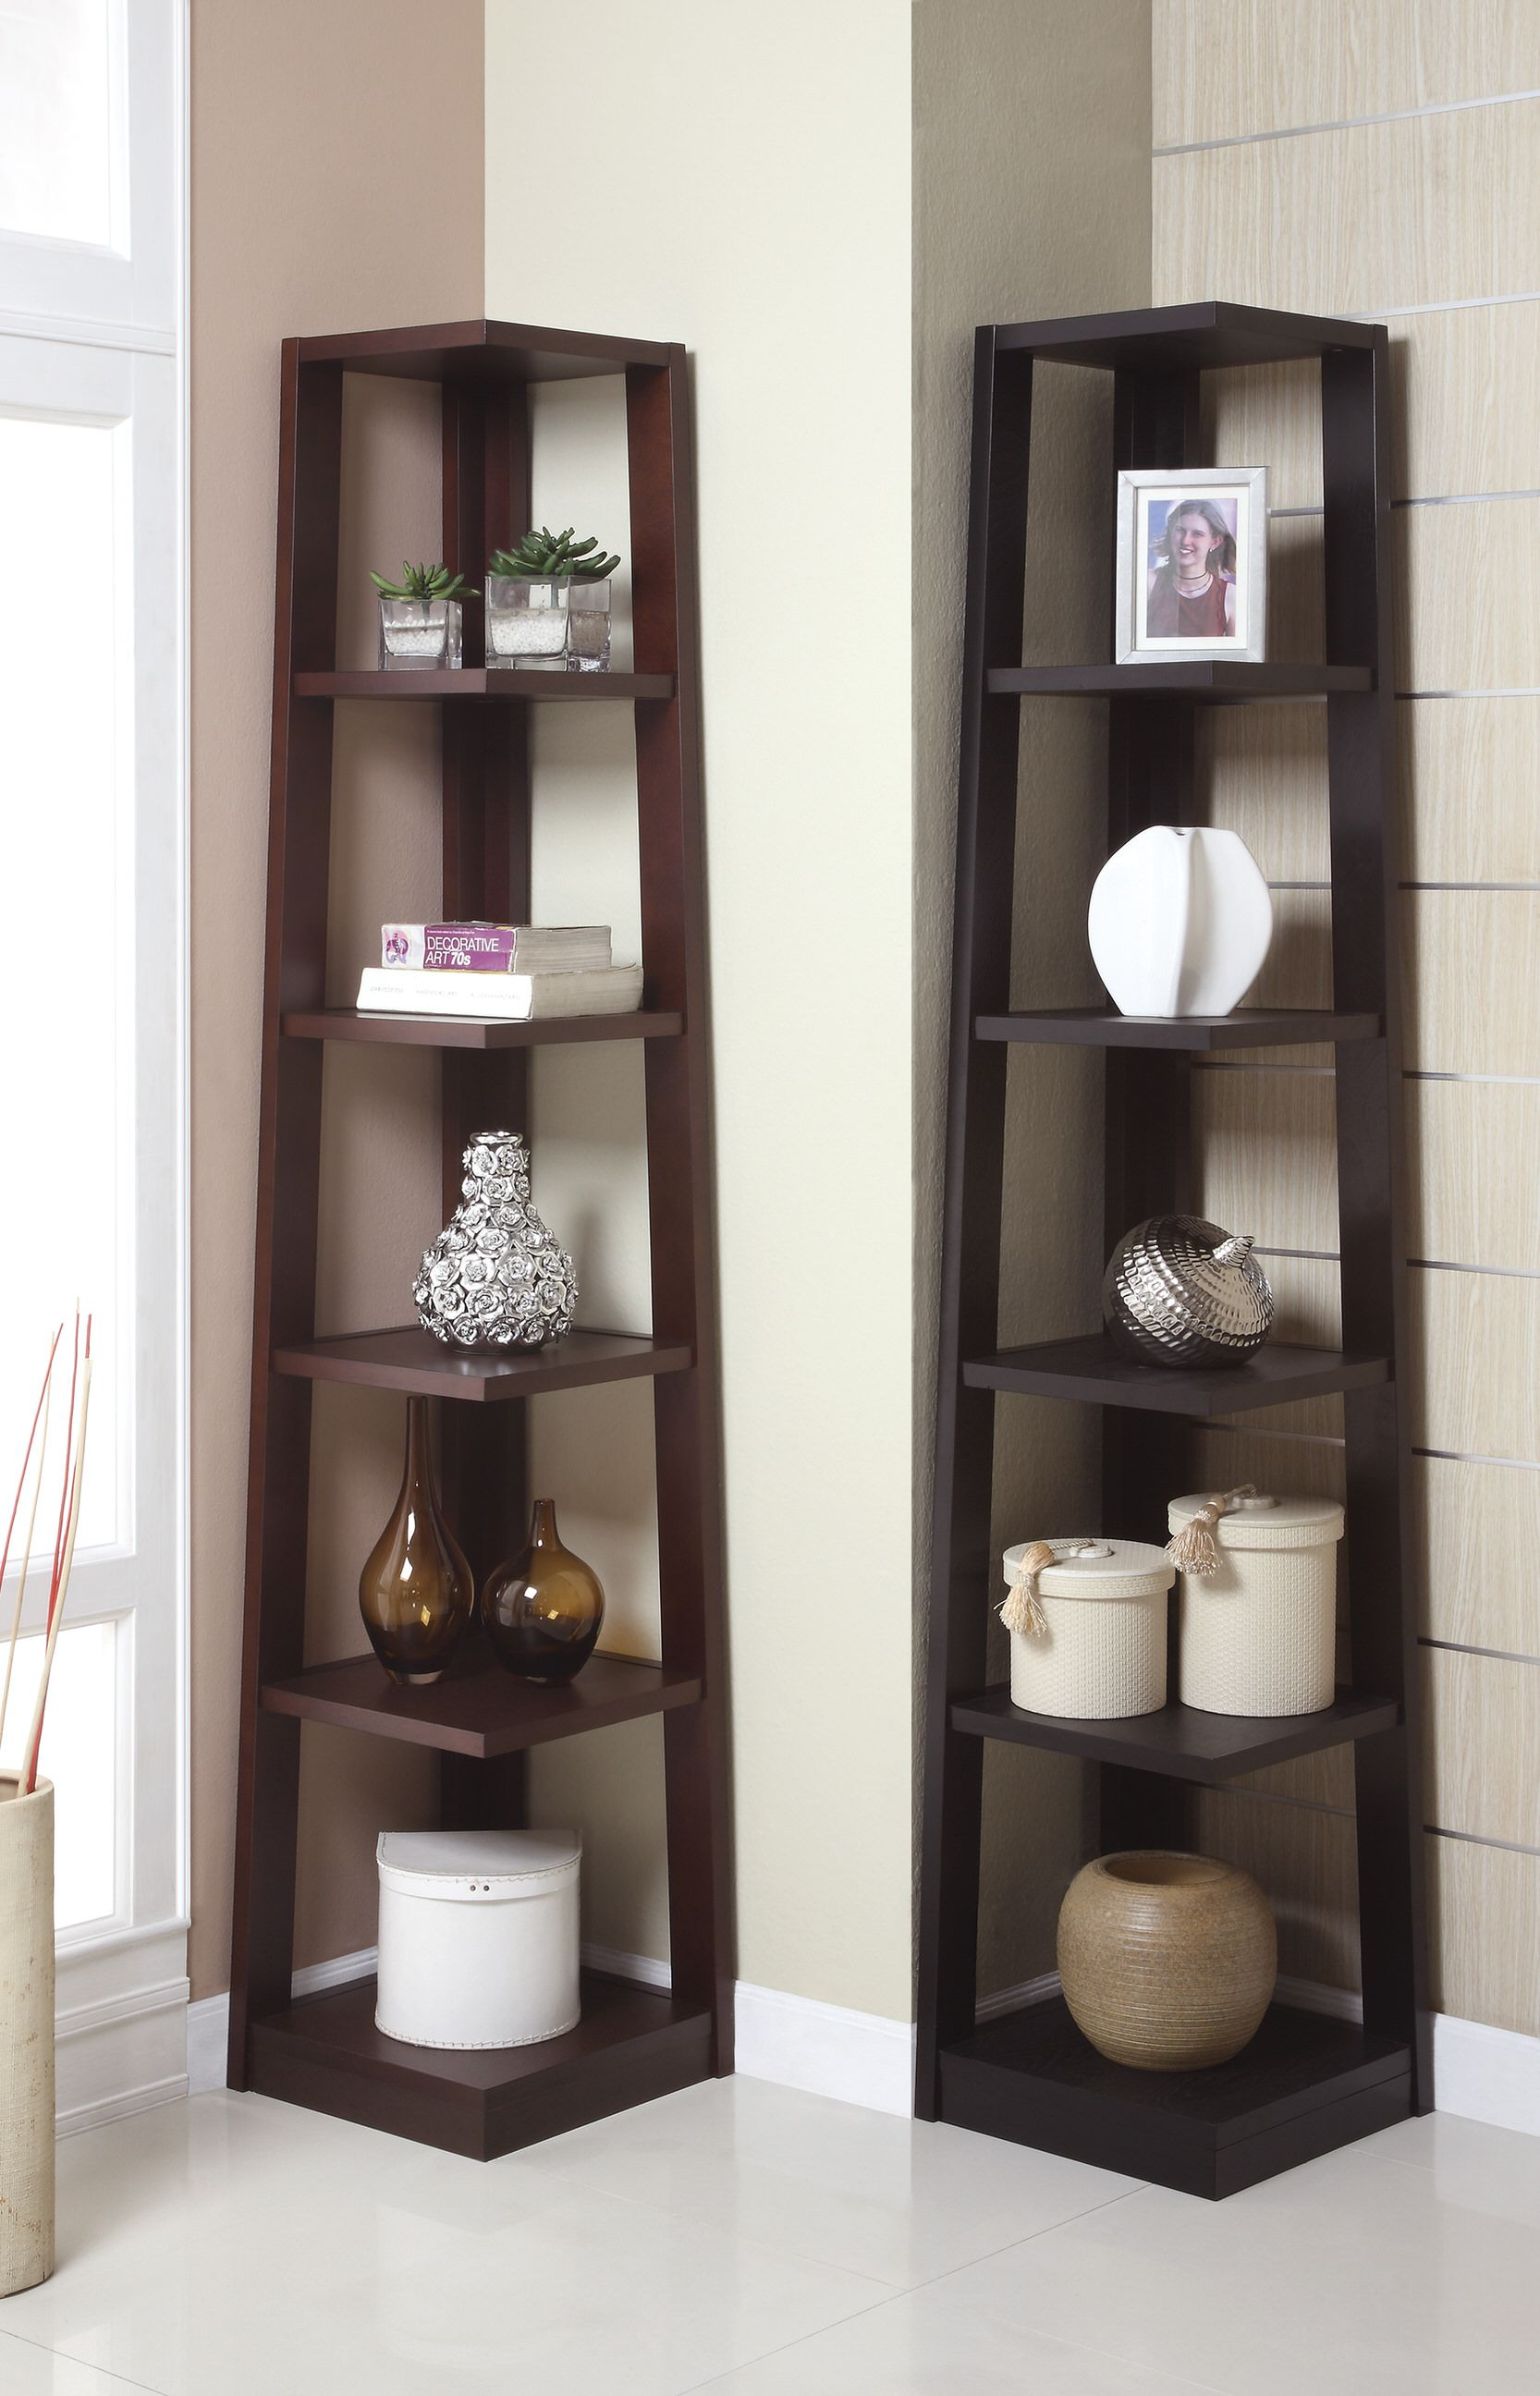 Book Muebles F4613 Walnut Book Shelf By Poundex Madera Natural